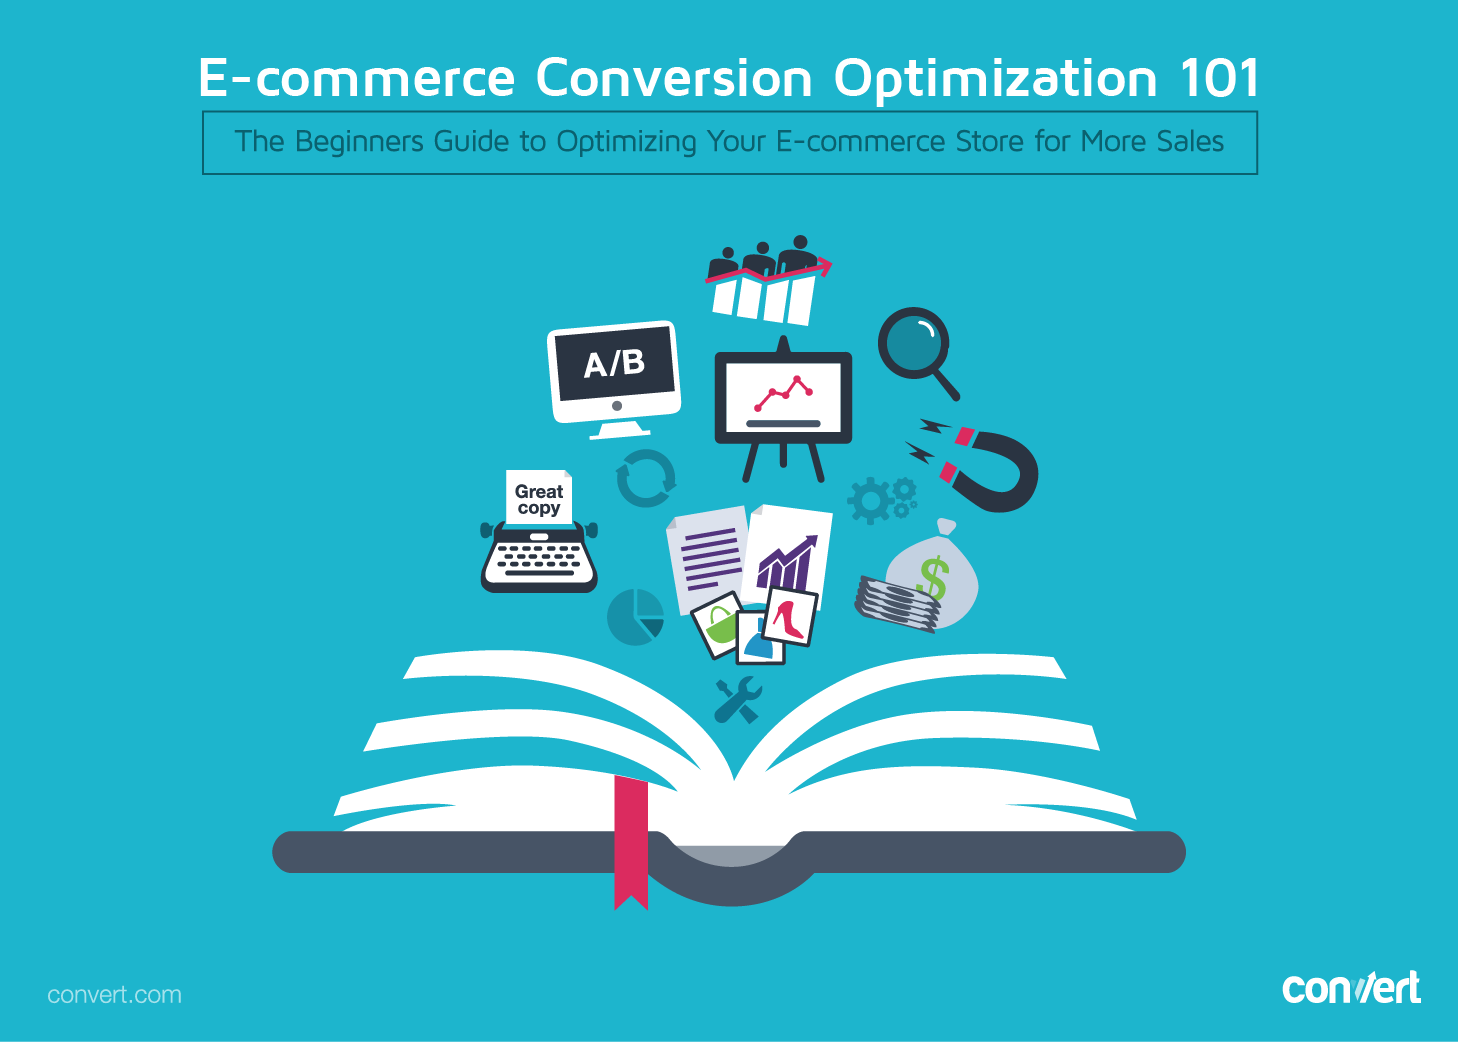 E-commerce Conversion Optimization 101-03